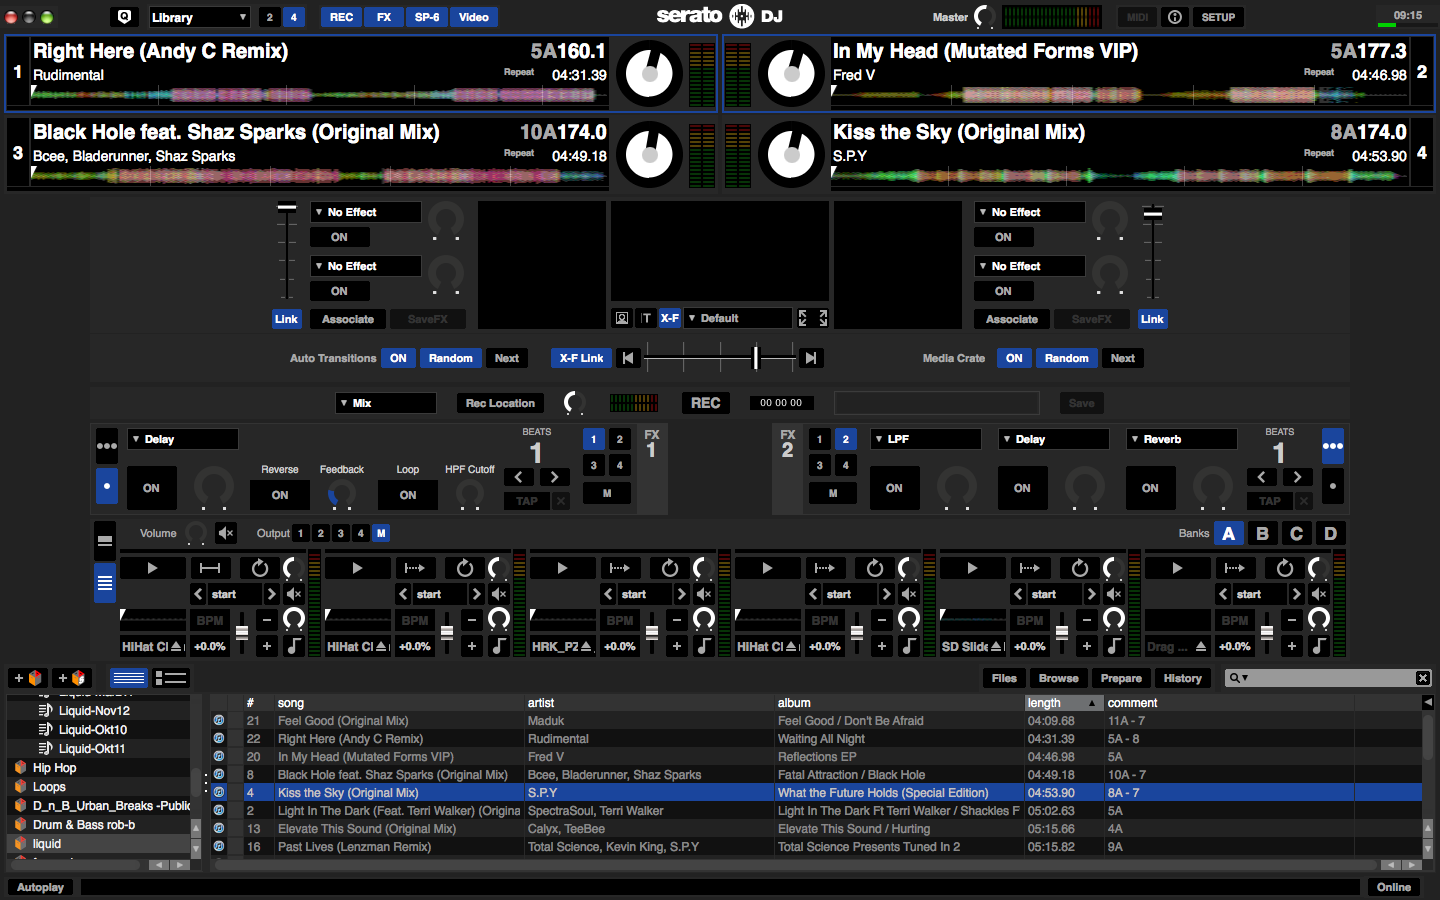 Serato DJ 1.6.1 Screenshot